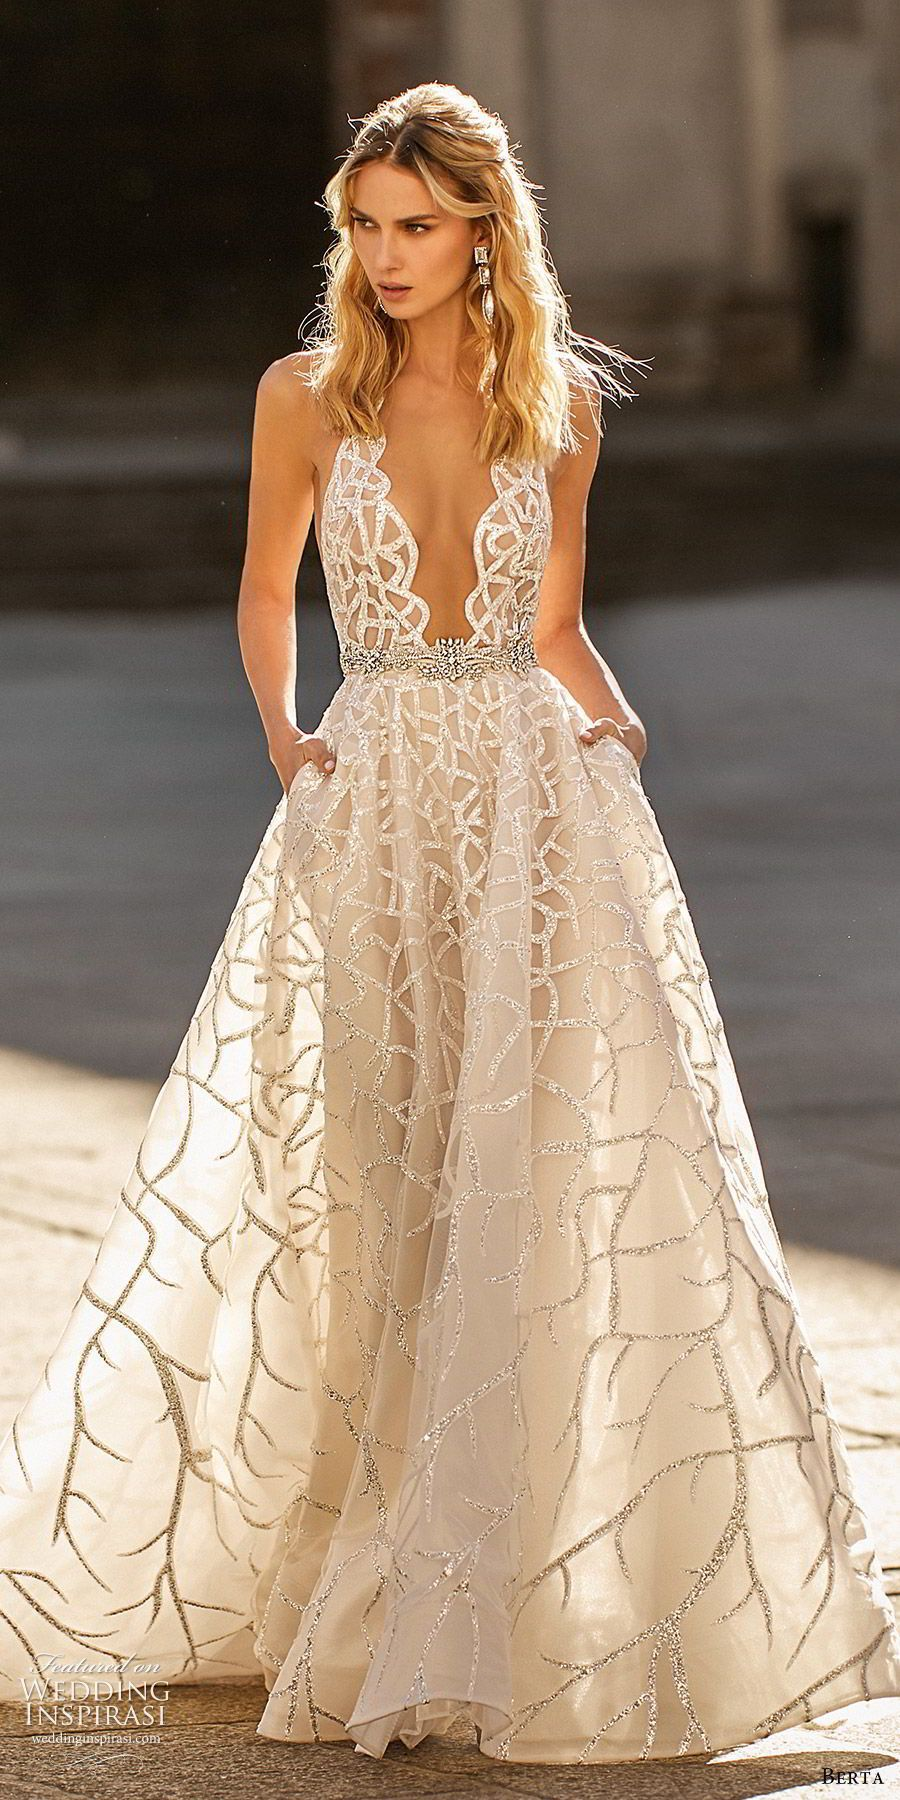 berta spring 2020 bridal sleeveless hatler neck plunging neckline fully embellished a line ball gown wedding dress (14) champagne glitzy princess chapel train mv -- Berta Spring 2020 Wedding Dresses   Wedding Inspirasi #wedding #weddings #bridal #weddingdress #weddingdresses #bride #fashion  ~ #bertaweddingdress